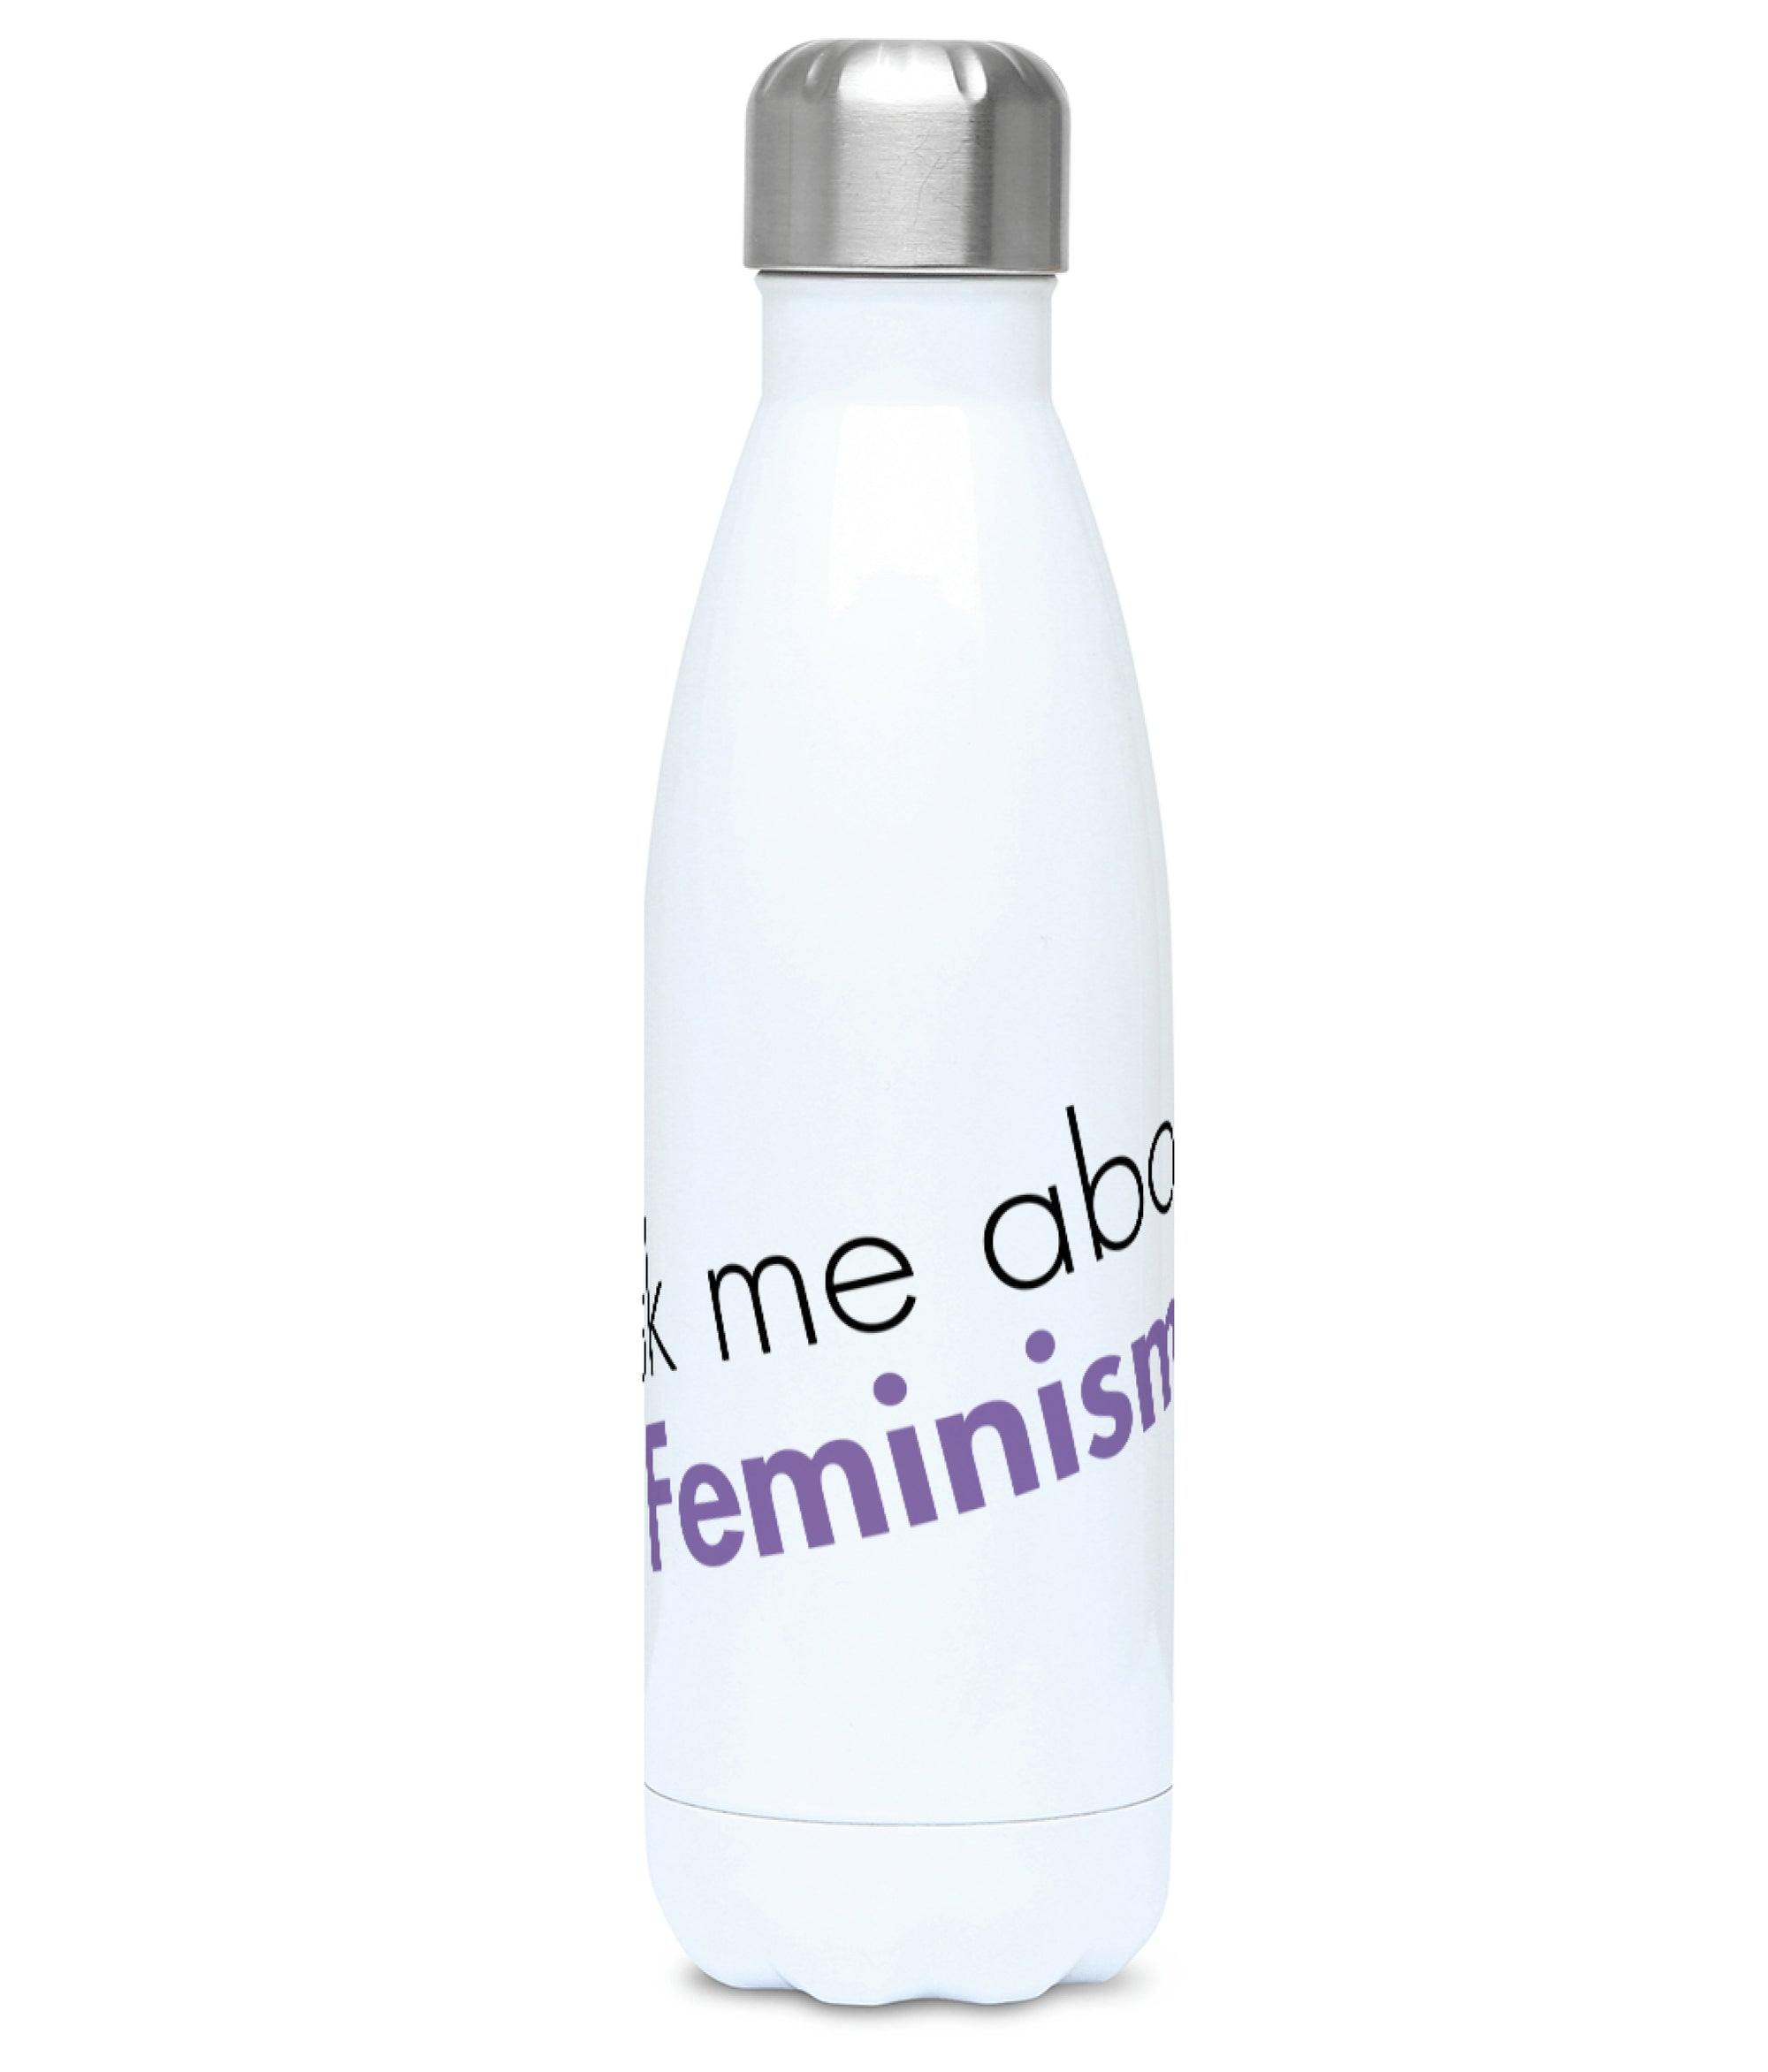 Feminist Water Bottle - Ask Me About Feminism - Front